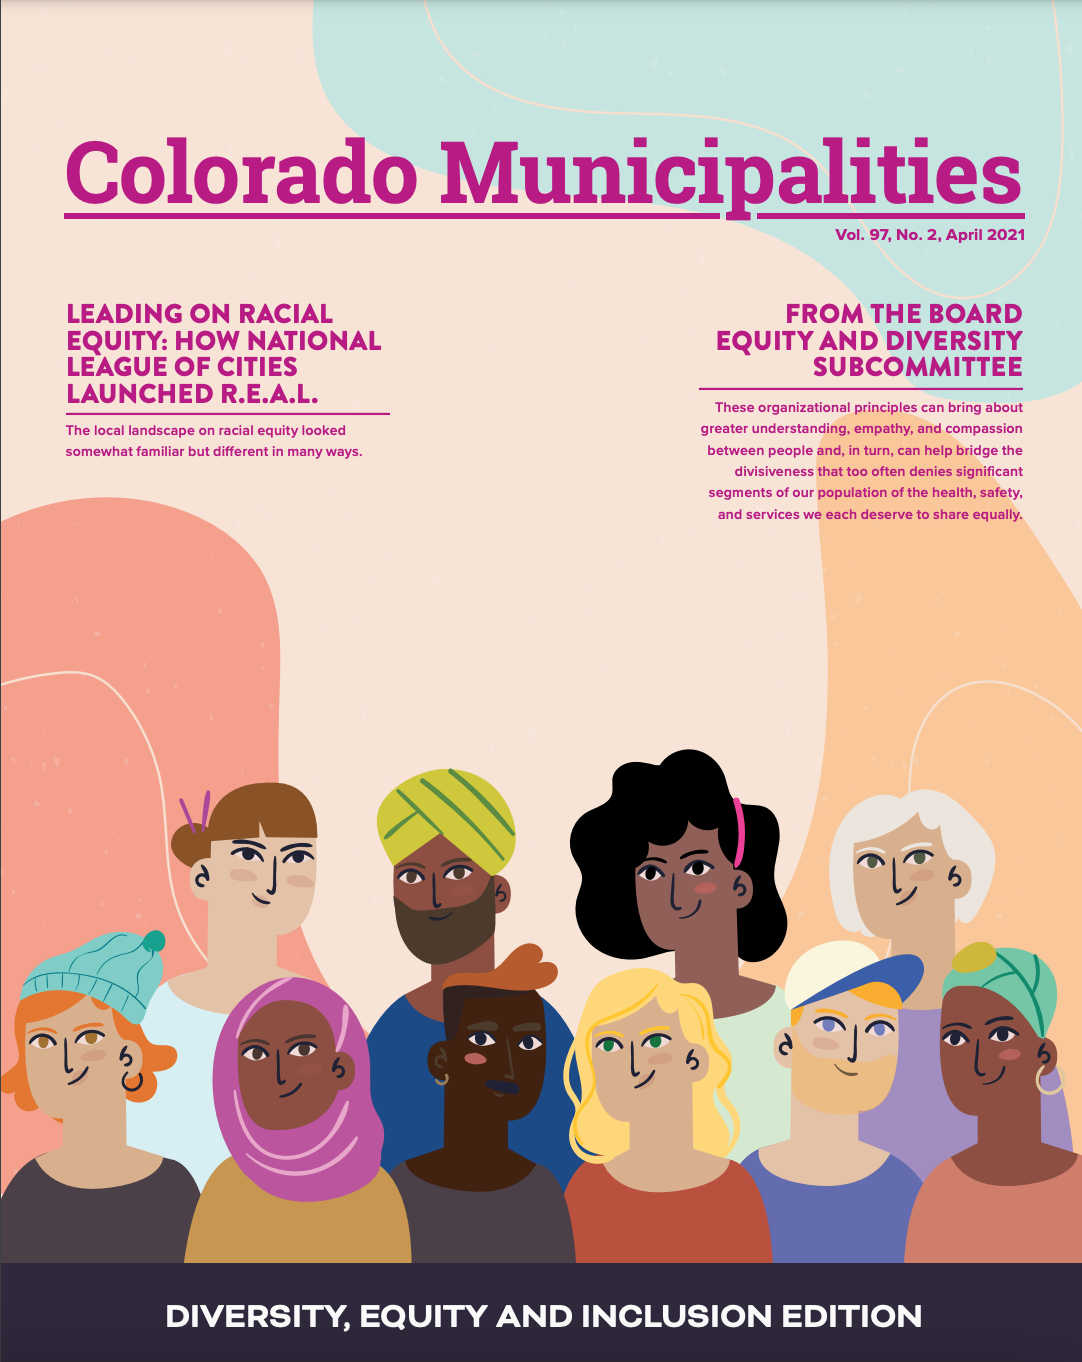 Colorado Municipalities - Equity, diversity and inclusion